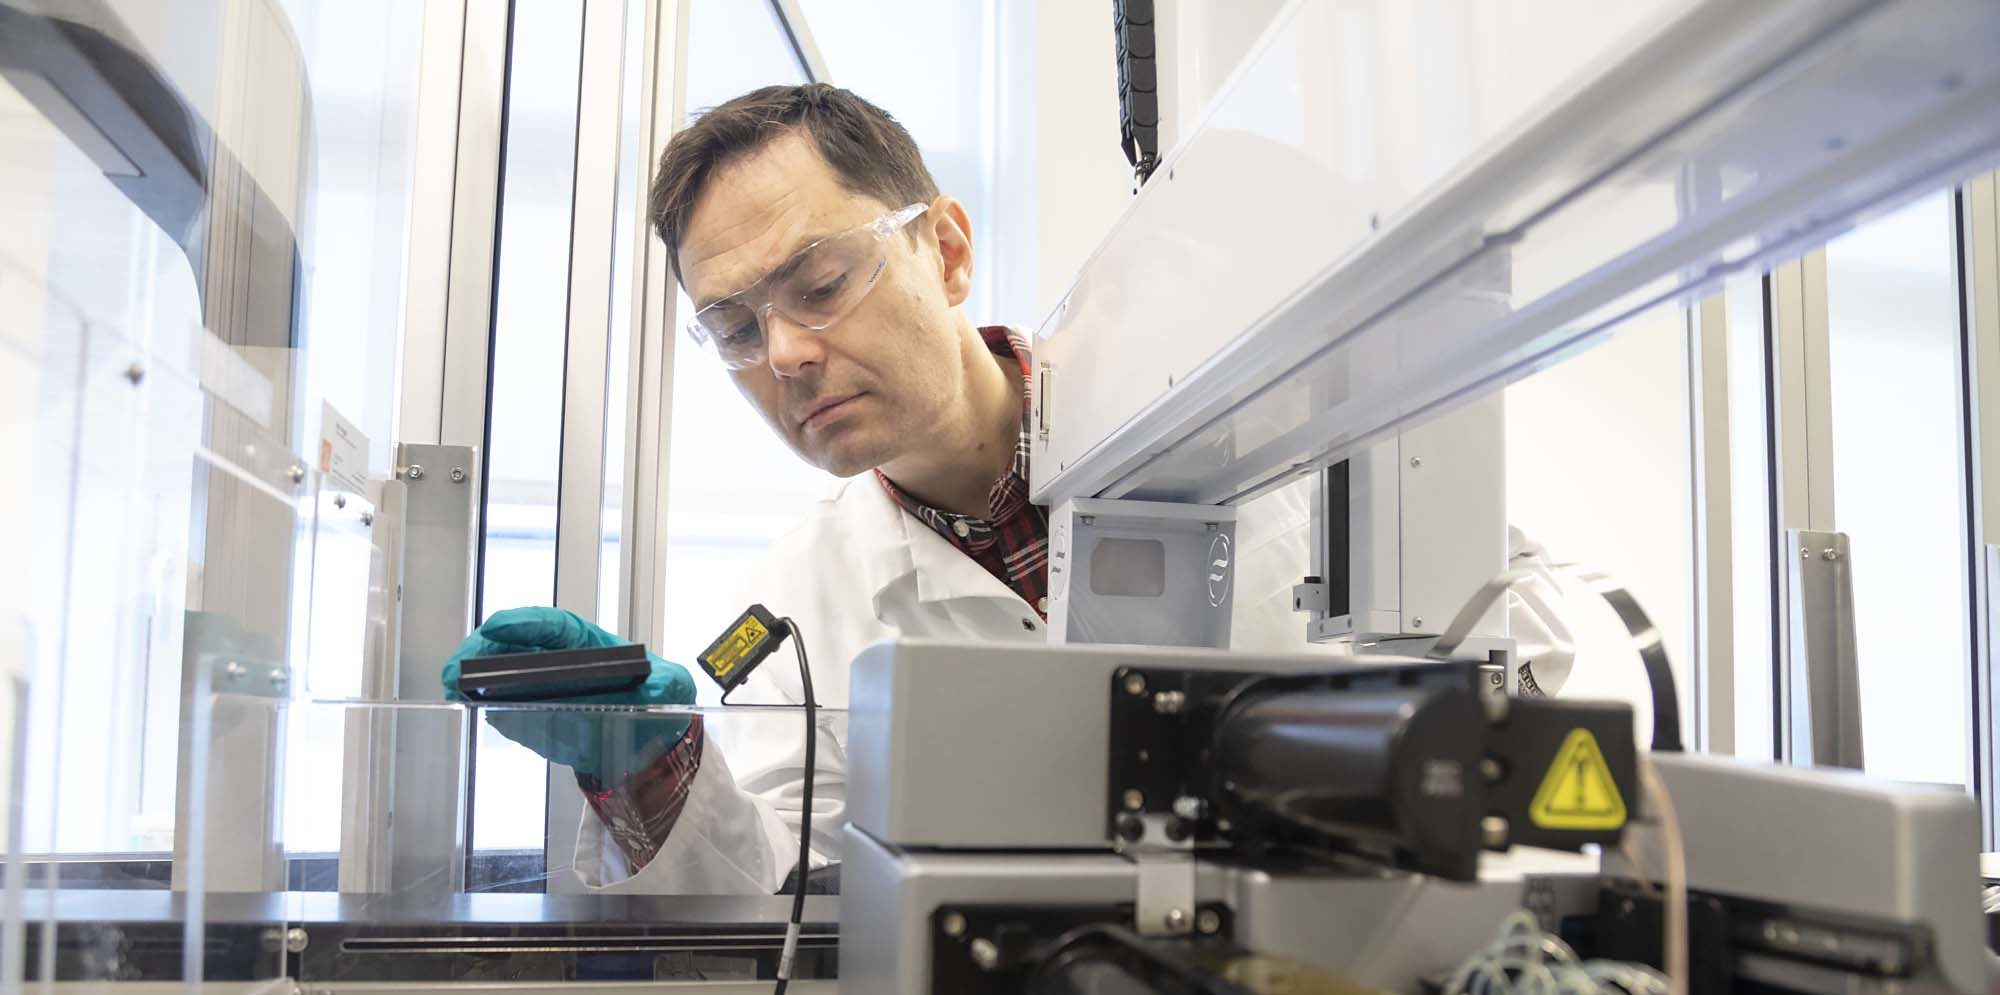 Researcher and biochemist Torkild Visnes in his lab at SINTEF. He is currently working to establish a similar biomedical research group focusing on drug development at SINTEF. Here pictured in front of a biological screening device. Photo: SINTEF/Thor Nielsen.